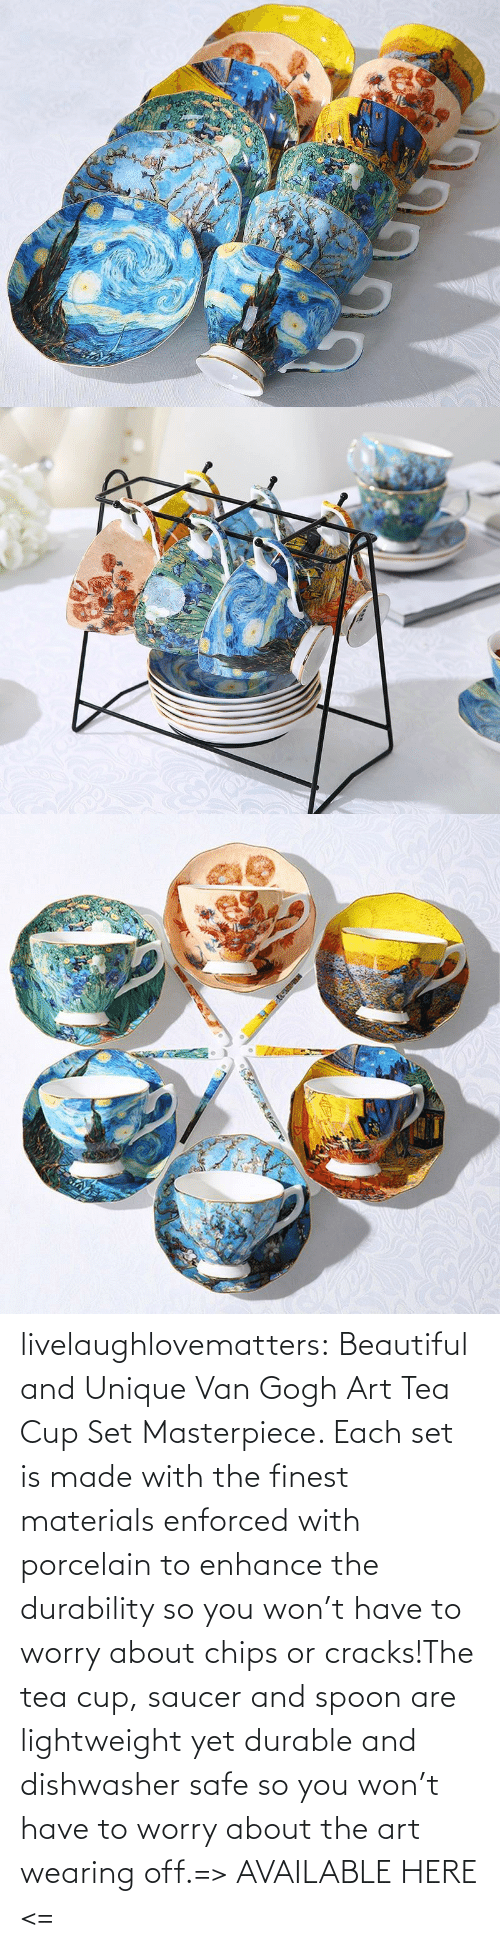 chips: livelaughlovematters:  Beautiful and Unique Van Gogh Art Tea Cup Set Masterpiece. Each set is made with the finest materials enforced with porcelain to enhance the durability so you won't have to worry about chips or cracks!The tea cup, saucer and spoon are lightweight yet durable and dishwasher safe so you won't have to worry about the art wearing off.=> AVAILABLE HERE <=